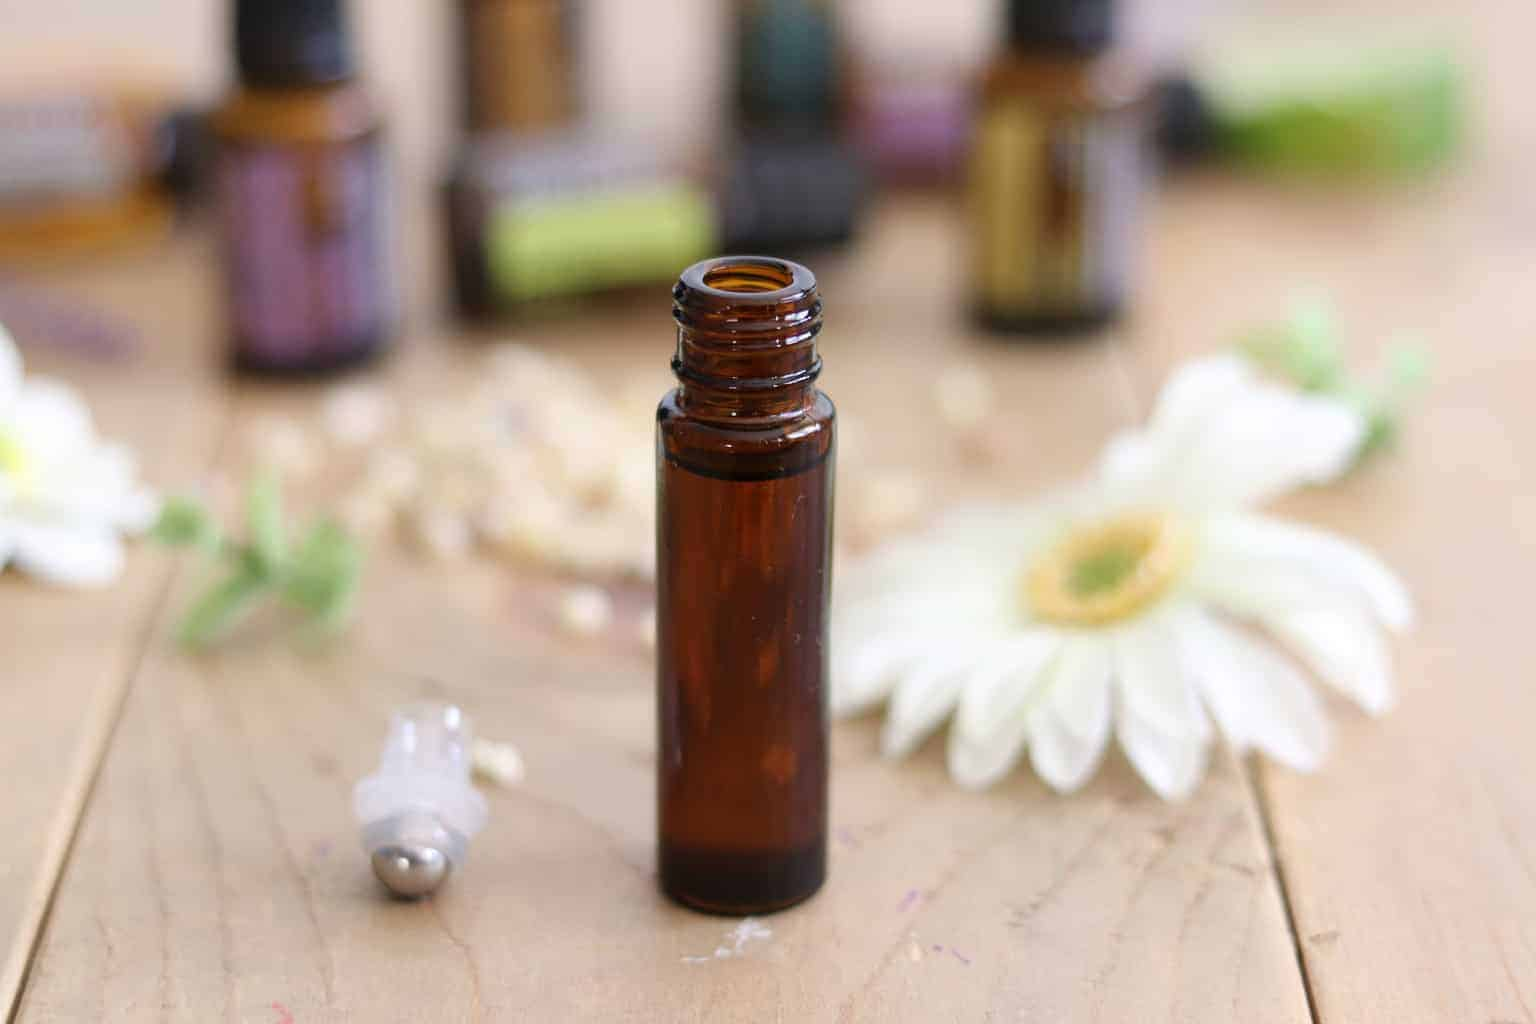 Roller bottle recipe for stress and anxiety. The best essential oils for stress and anxiety are lavender, bergamot, copaiba, lemon, lime, doterra balance blend, doterra serenity blend, and doterra citrus bliss blend. Add 5 drops of each essential oil to a roller bottle and top off with fractionated coconut oil. Apply topically as needed .